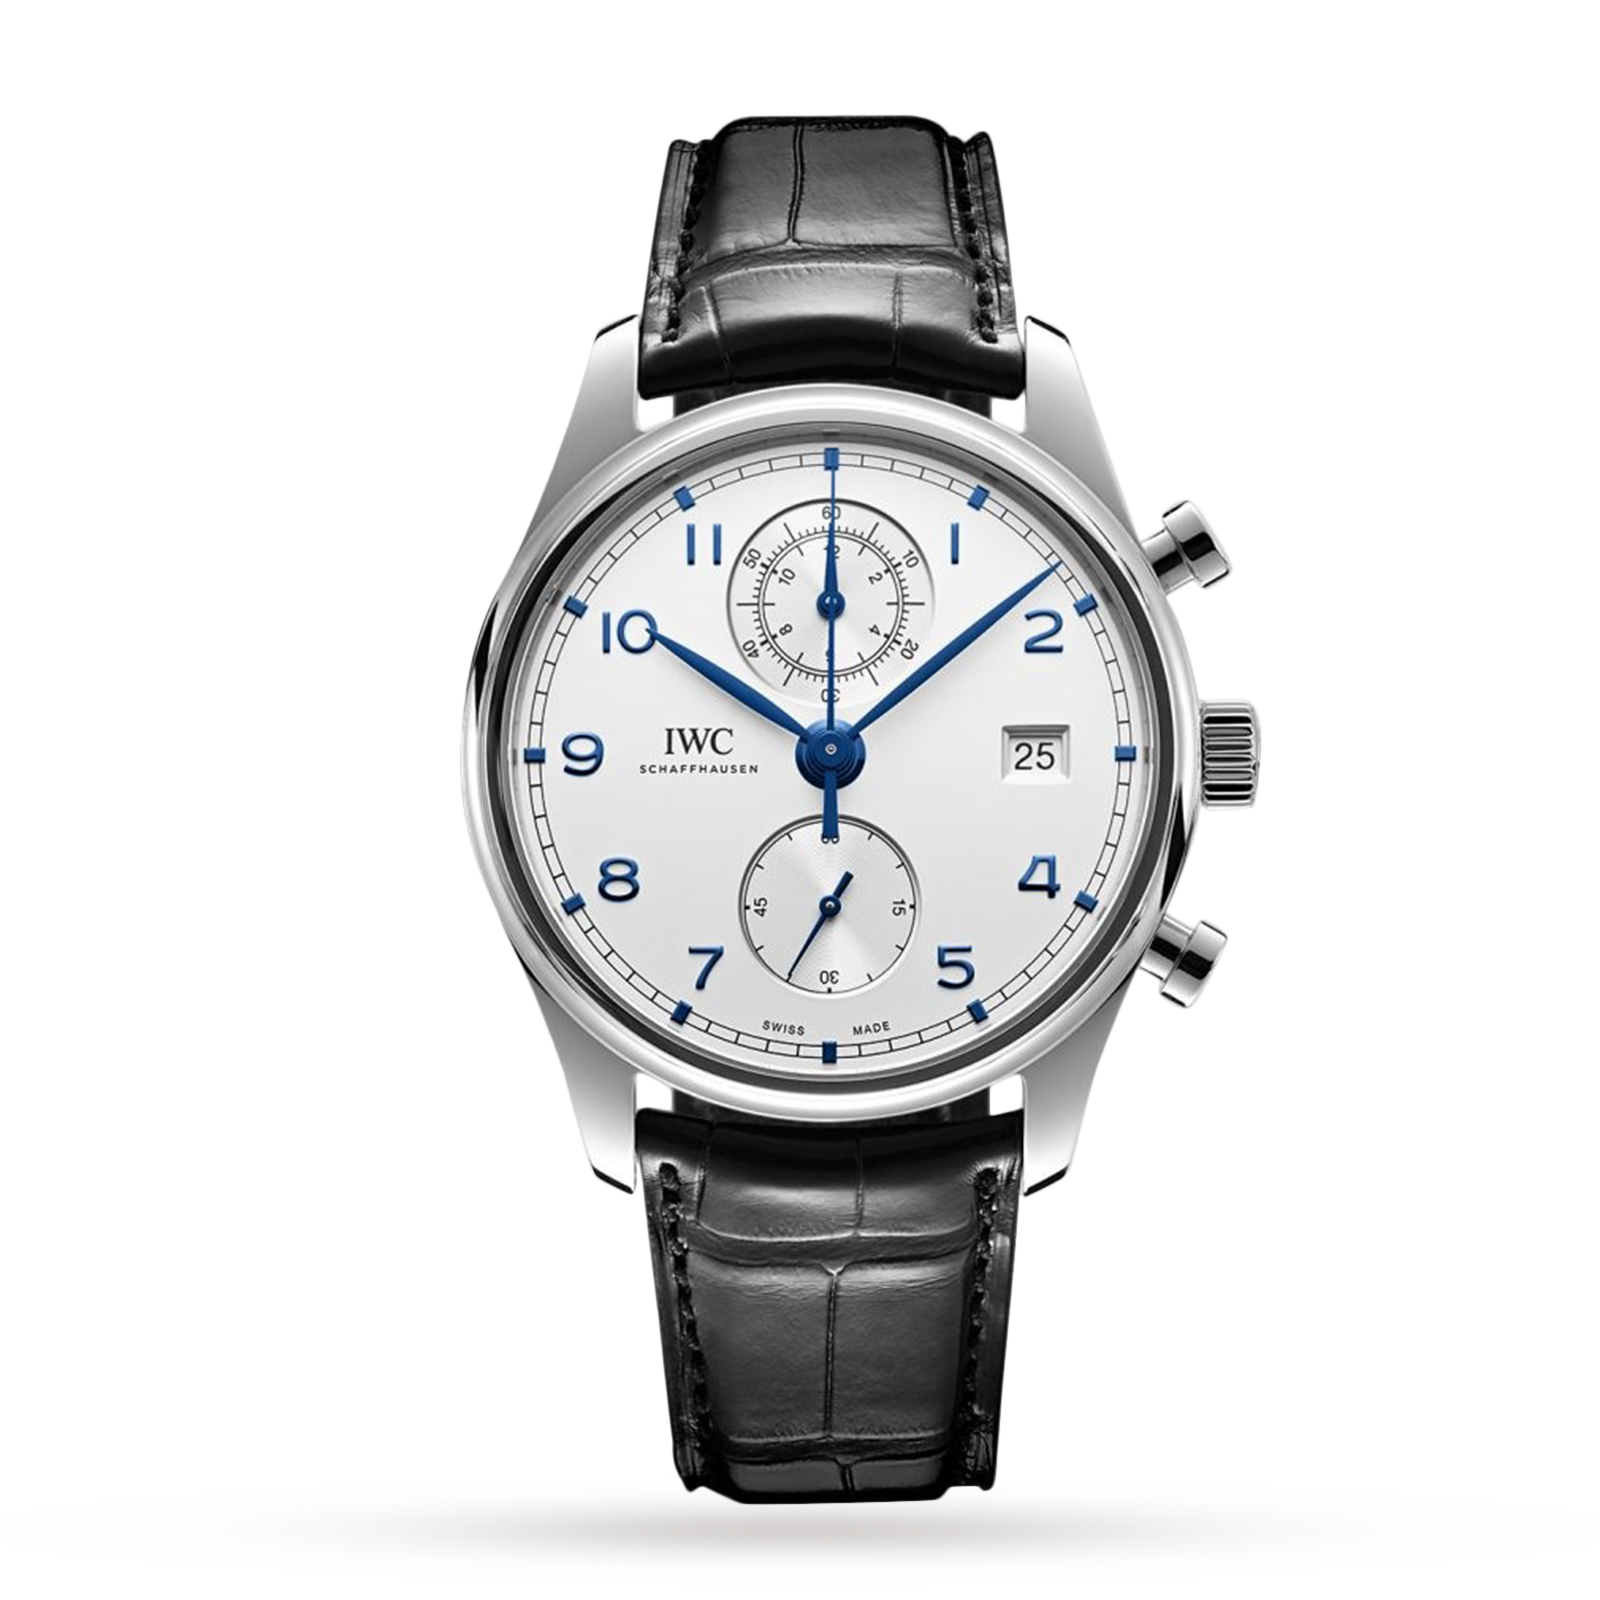 IWC Portugieser Chronograph Classic Men's Watch